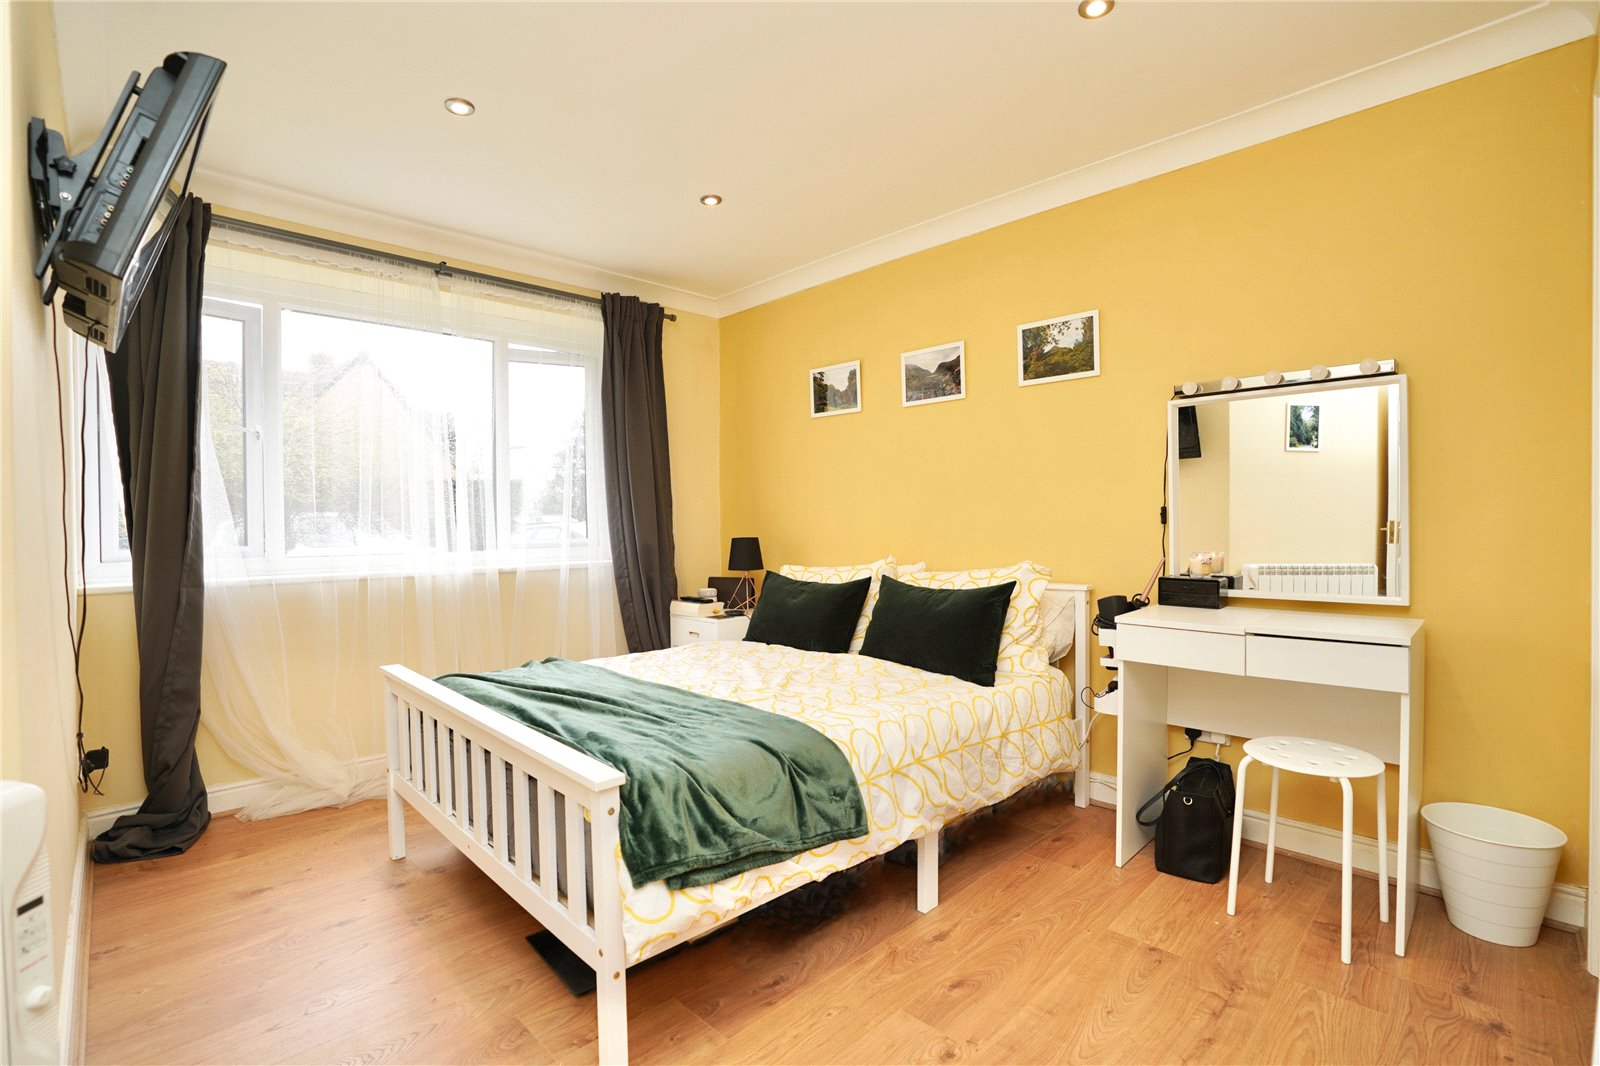 2 bed apartment for sale in Earith, PE28 3PP  - Property Image 7